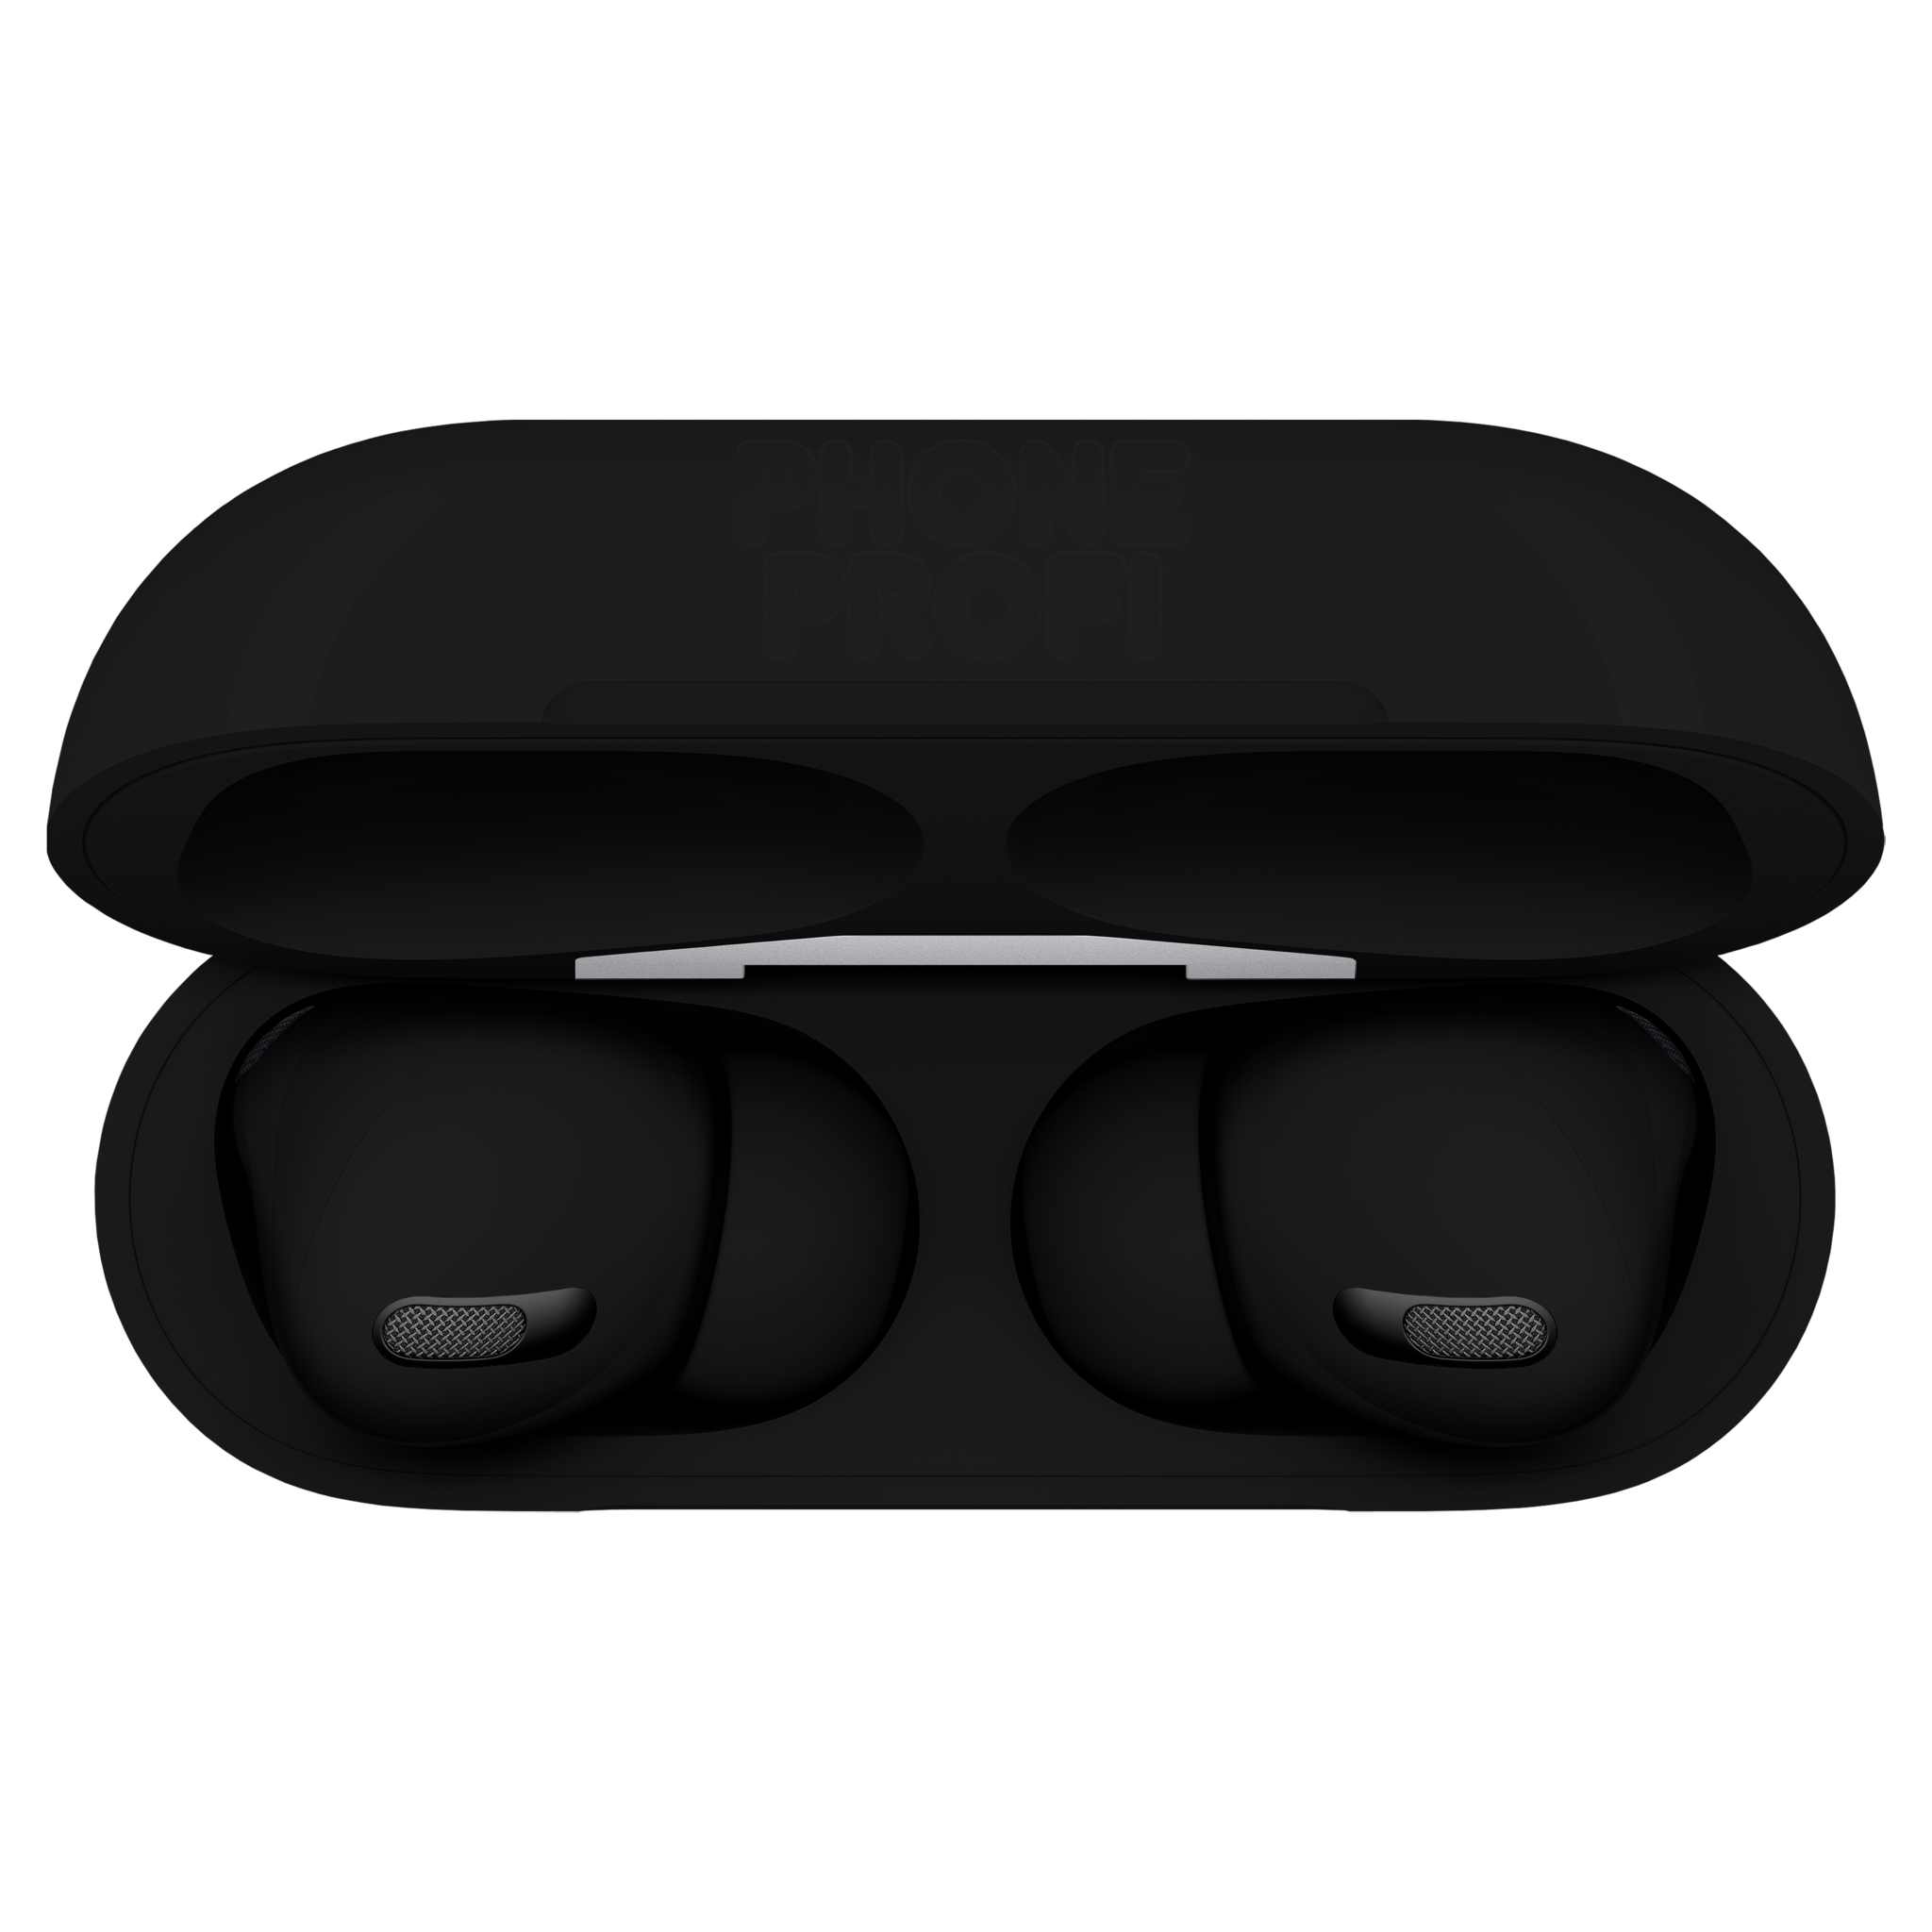 Apple AirPods Pro Color Premium Black (Чёрный)